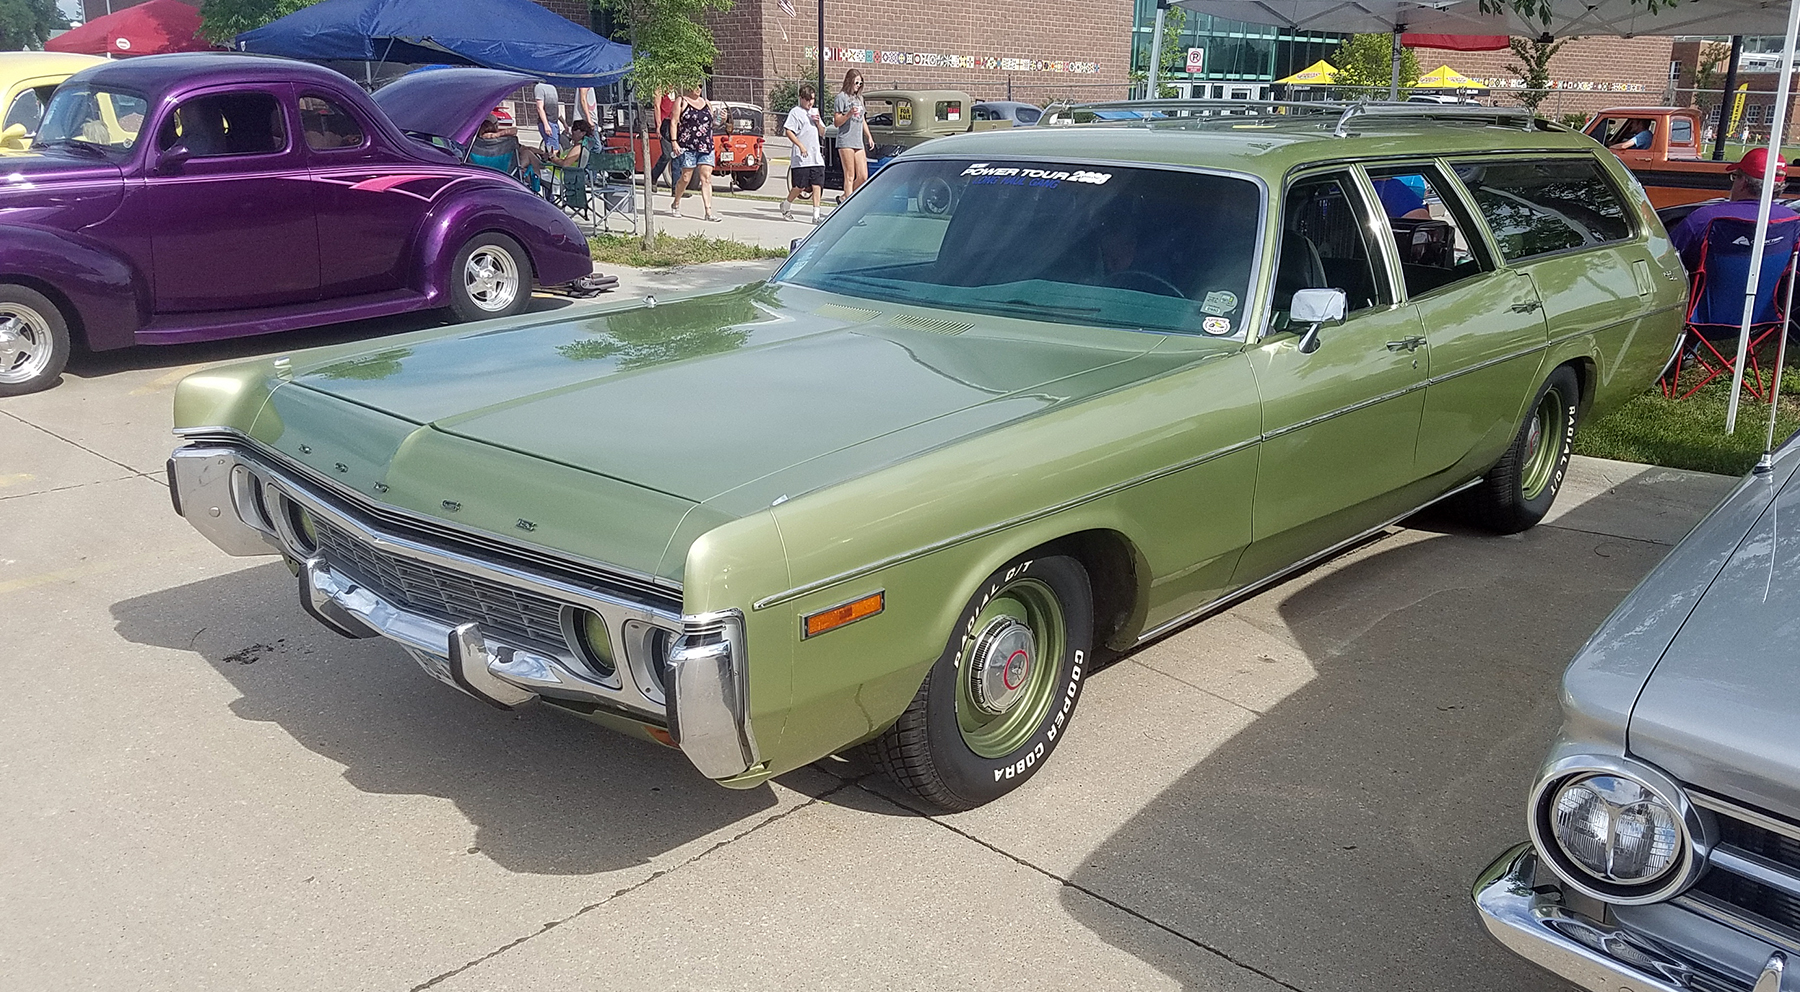 1972 Dodge Polara station wagon